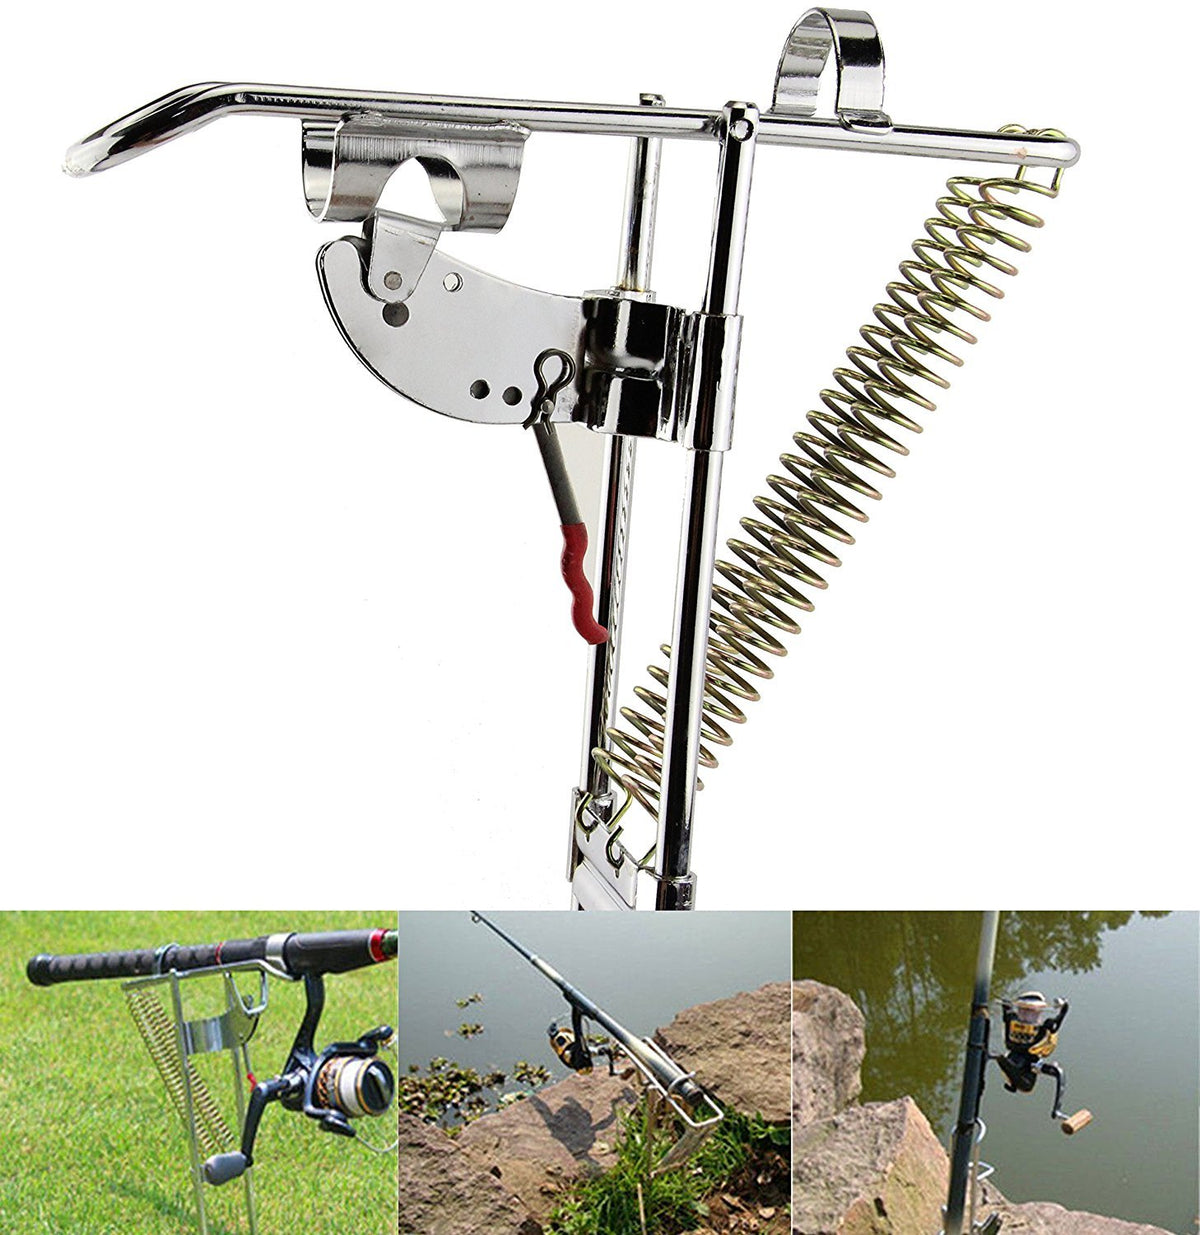 Automatic Spring Hook Setter - Lush & Keen - Awesome Products